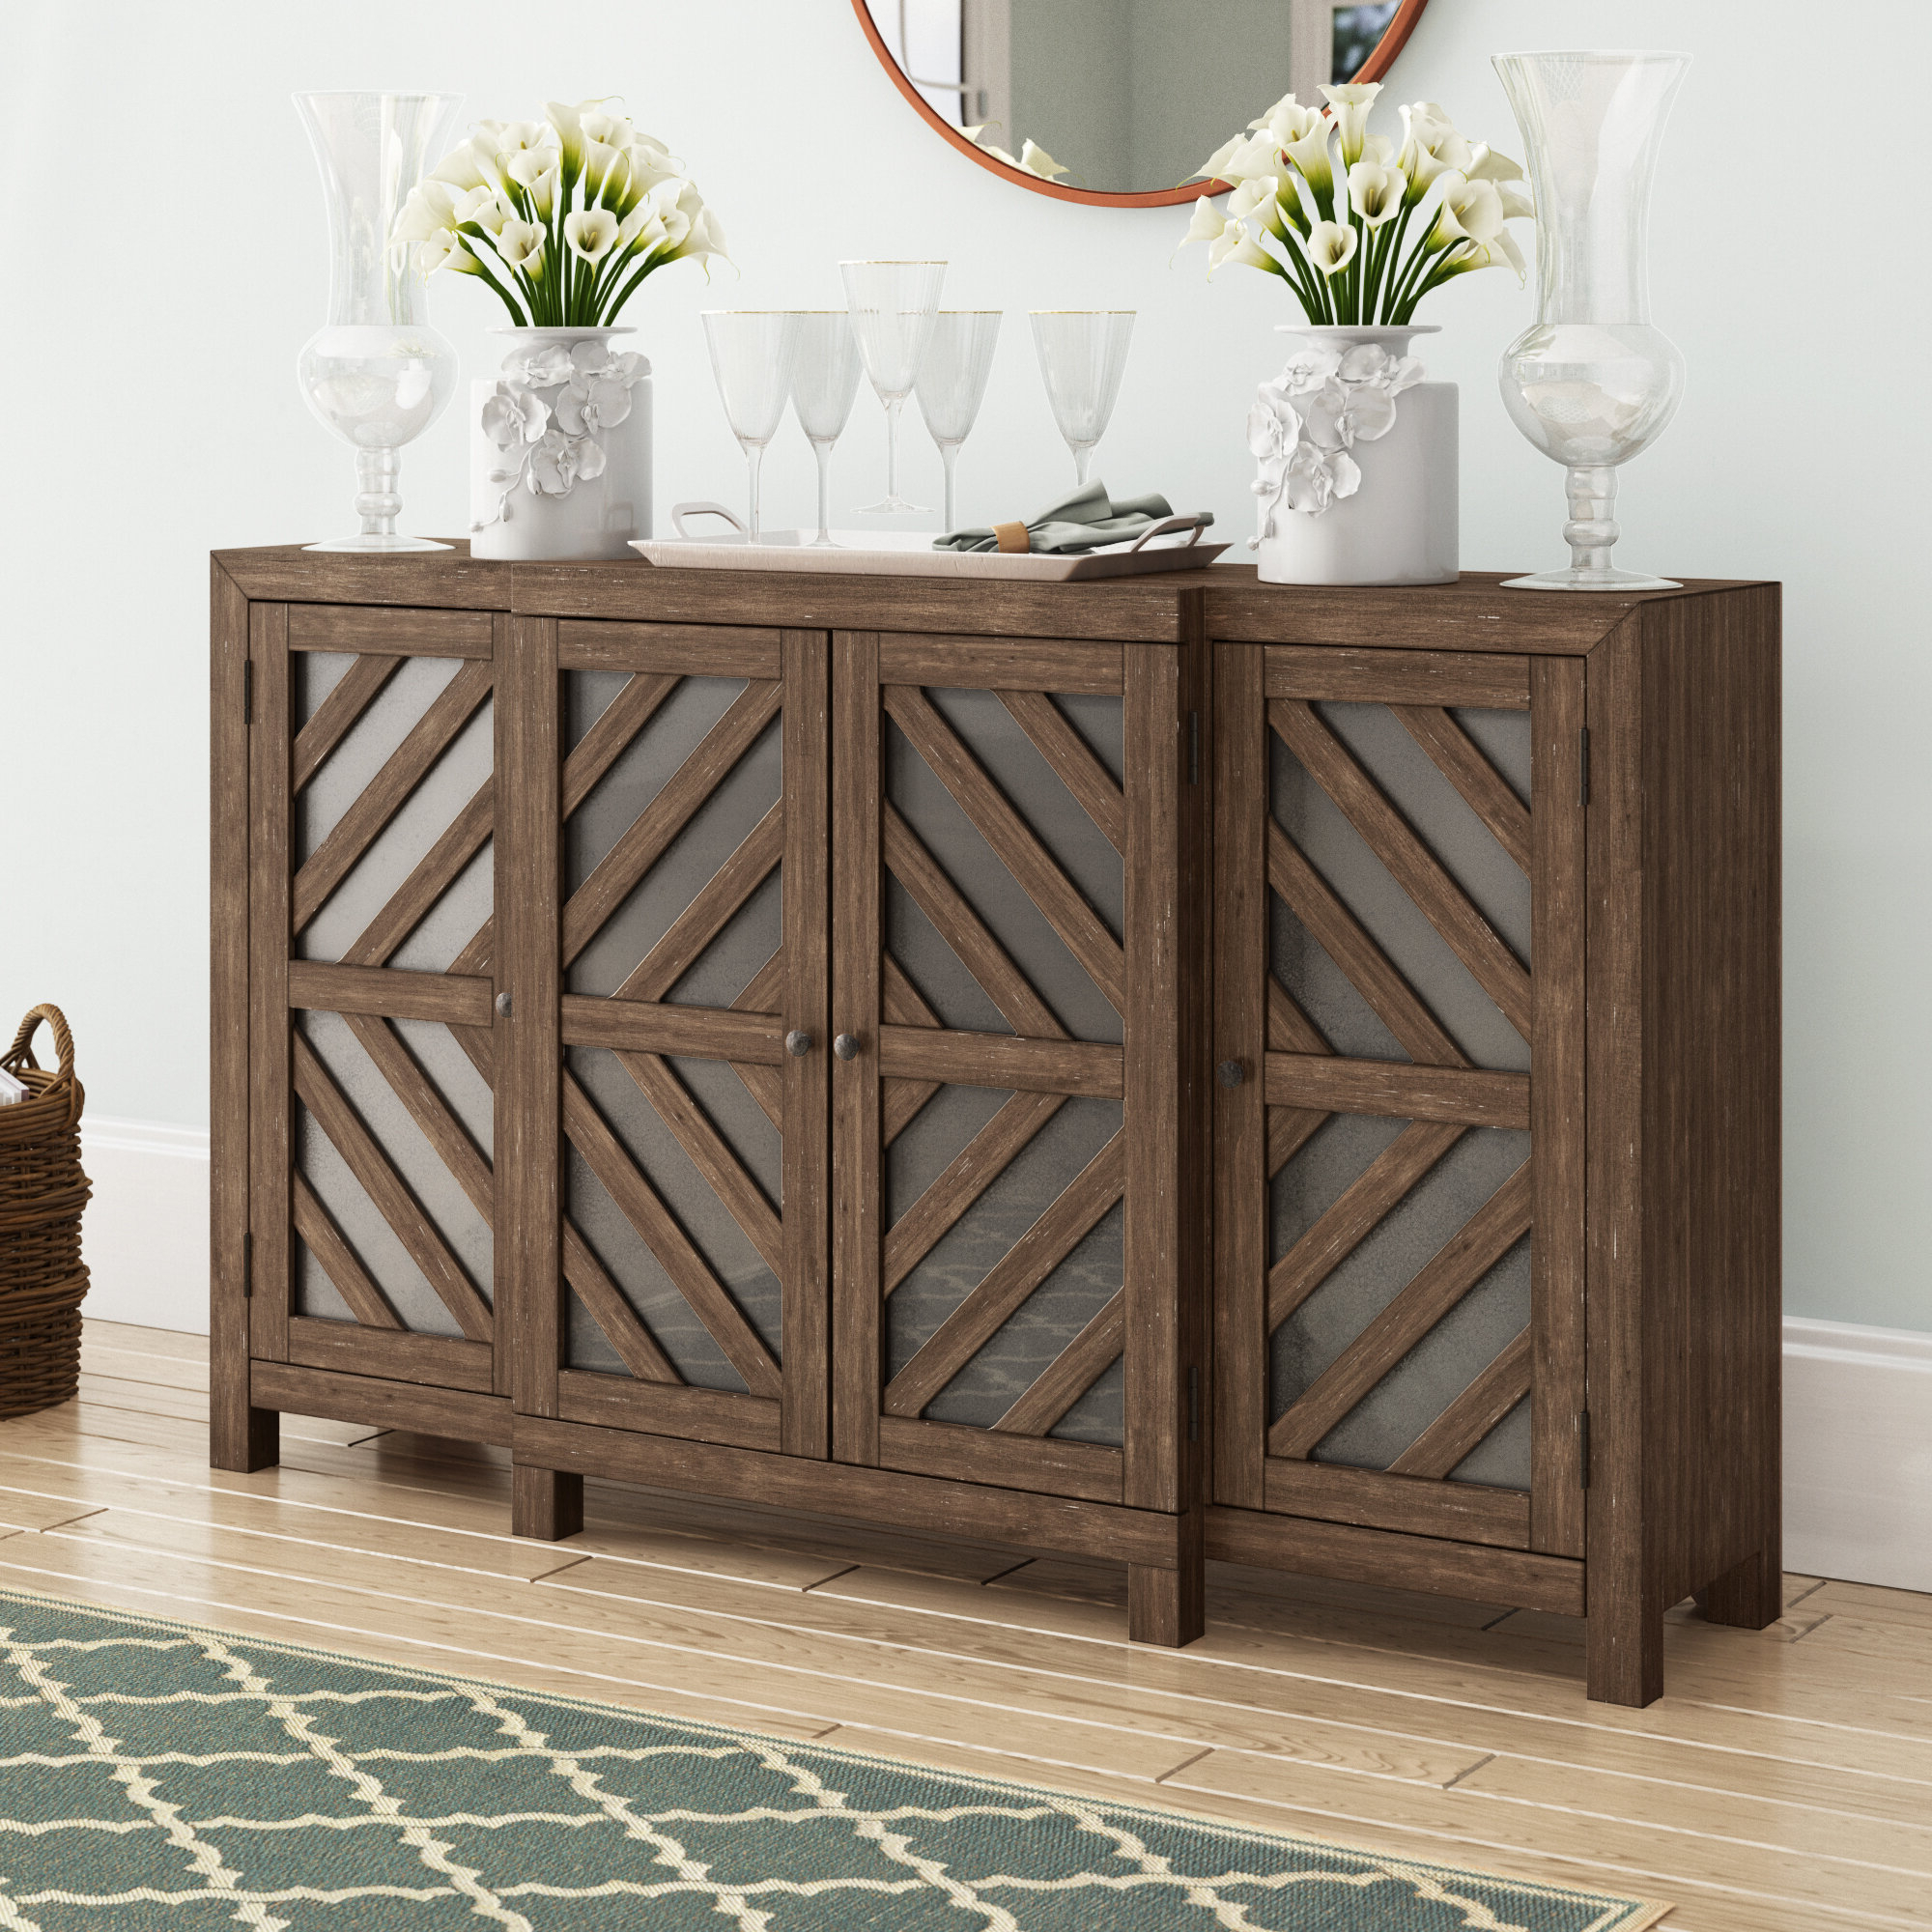 72 Inch Credenza (View 2 of 20)